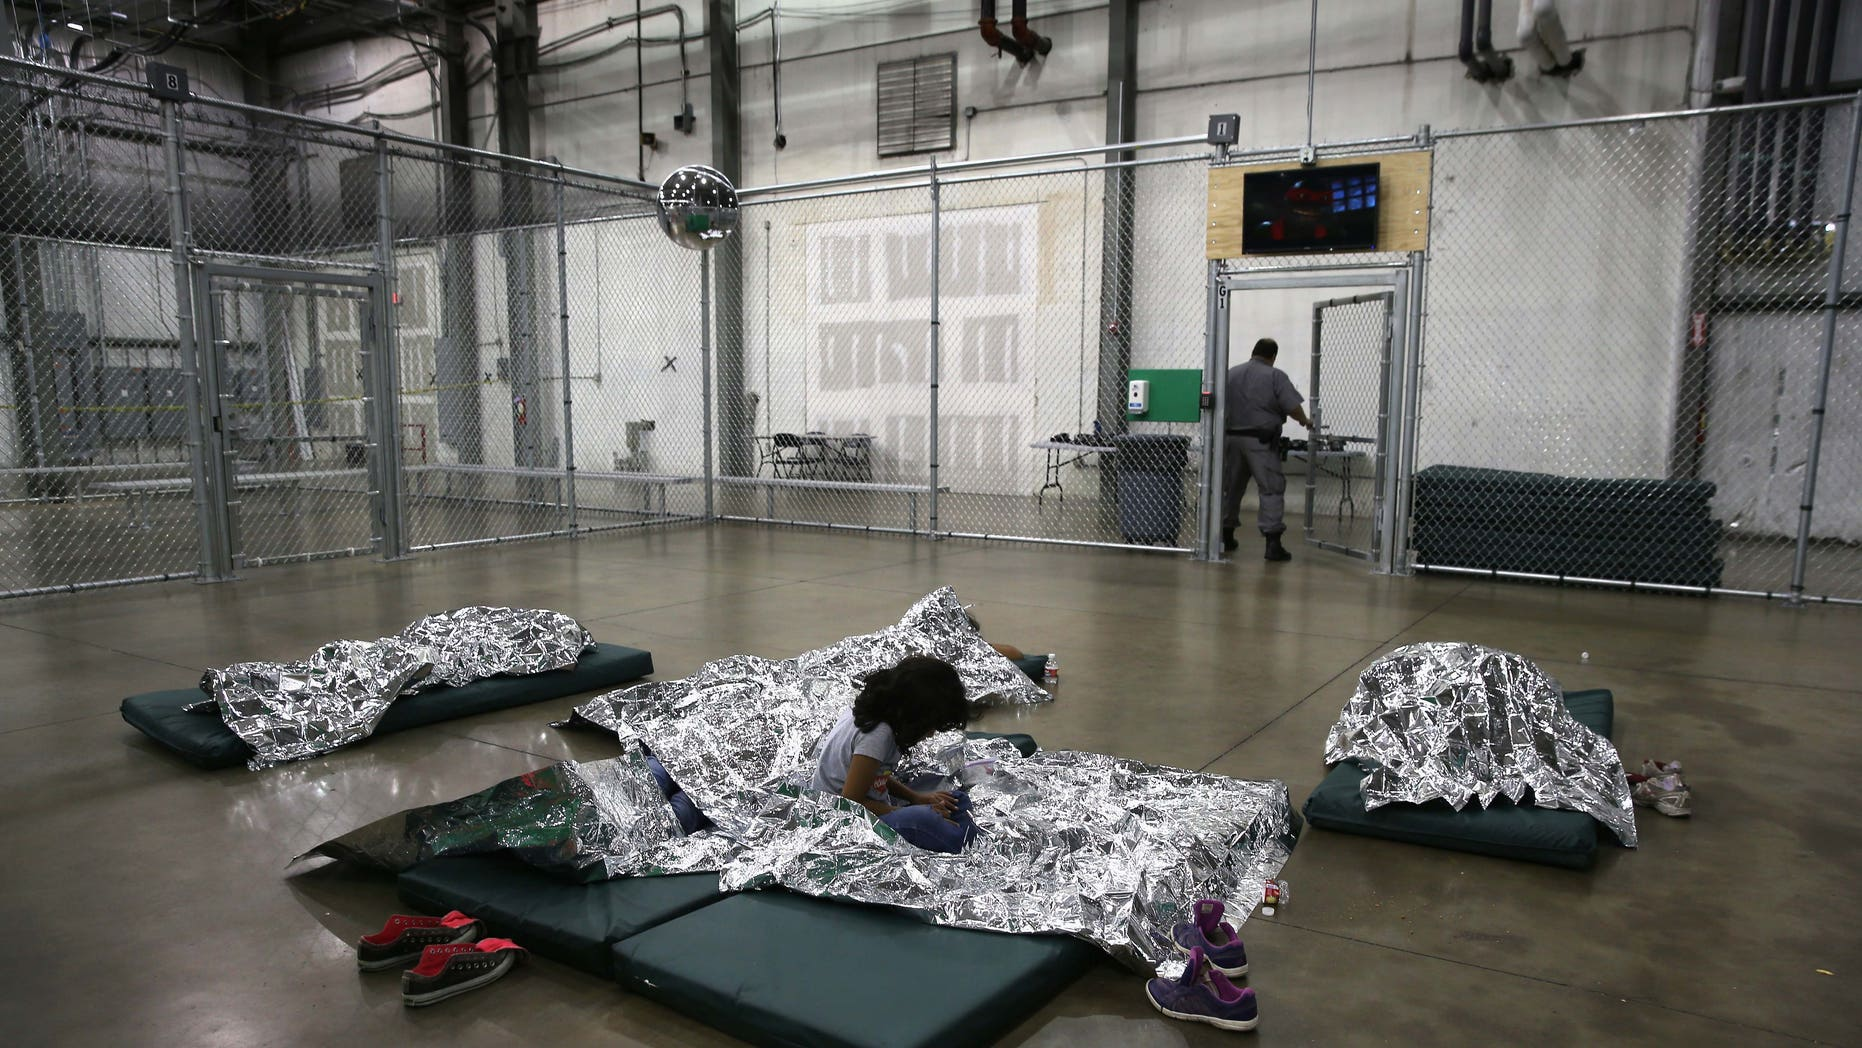 MCALLEN, TX - SEPTEMBER 08:  A girl from Central America rests on thermal blankets at a detention facility run by the U.S. Border Patrol on September 8, 2014 in McAllen, Texas. The Border Patrol opened the holding center to temporarily house the children after tens of thousands of families and unaccompanied minors from Central America crossed the border illegally into the United States during the spring and summer. Although the flow of underage immigrants has since slowed greatly, thousands of them are now housed in centers around the United States as immigration courts process their cases.  (Photo by John Moore/Getty Images)